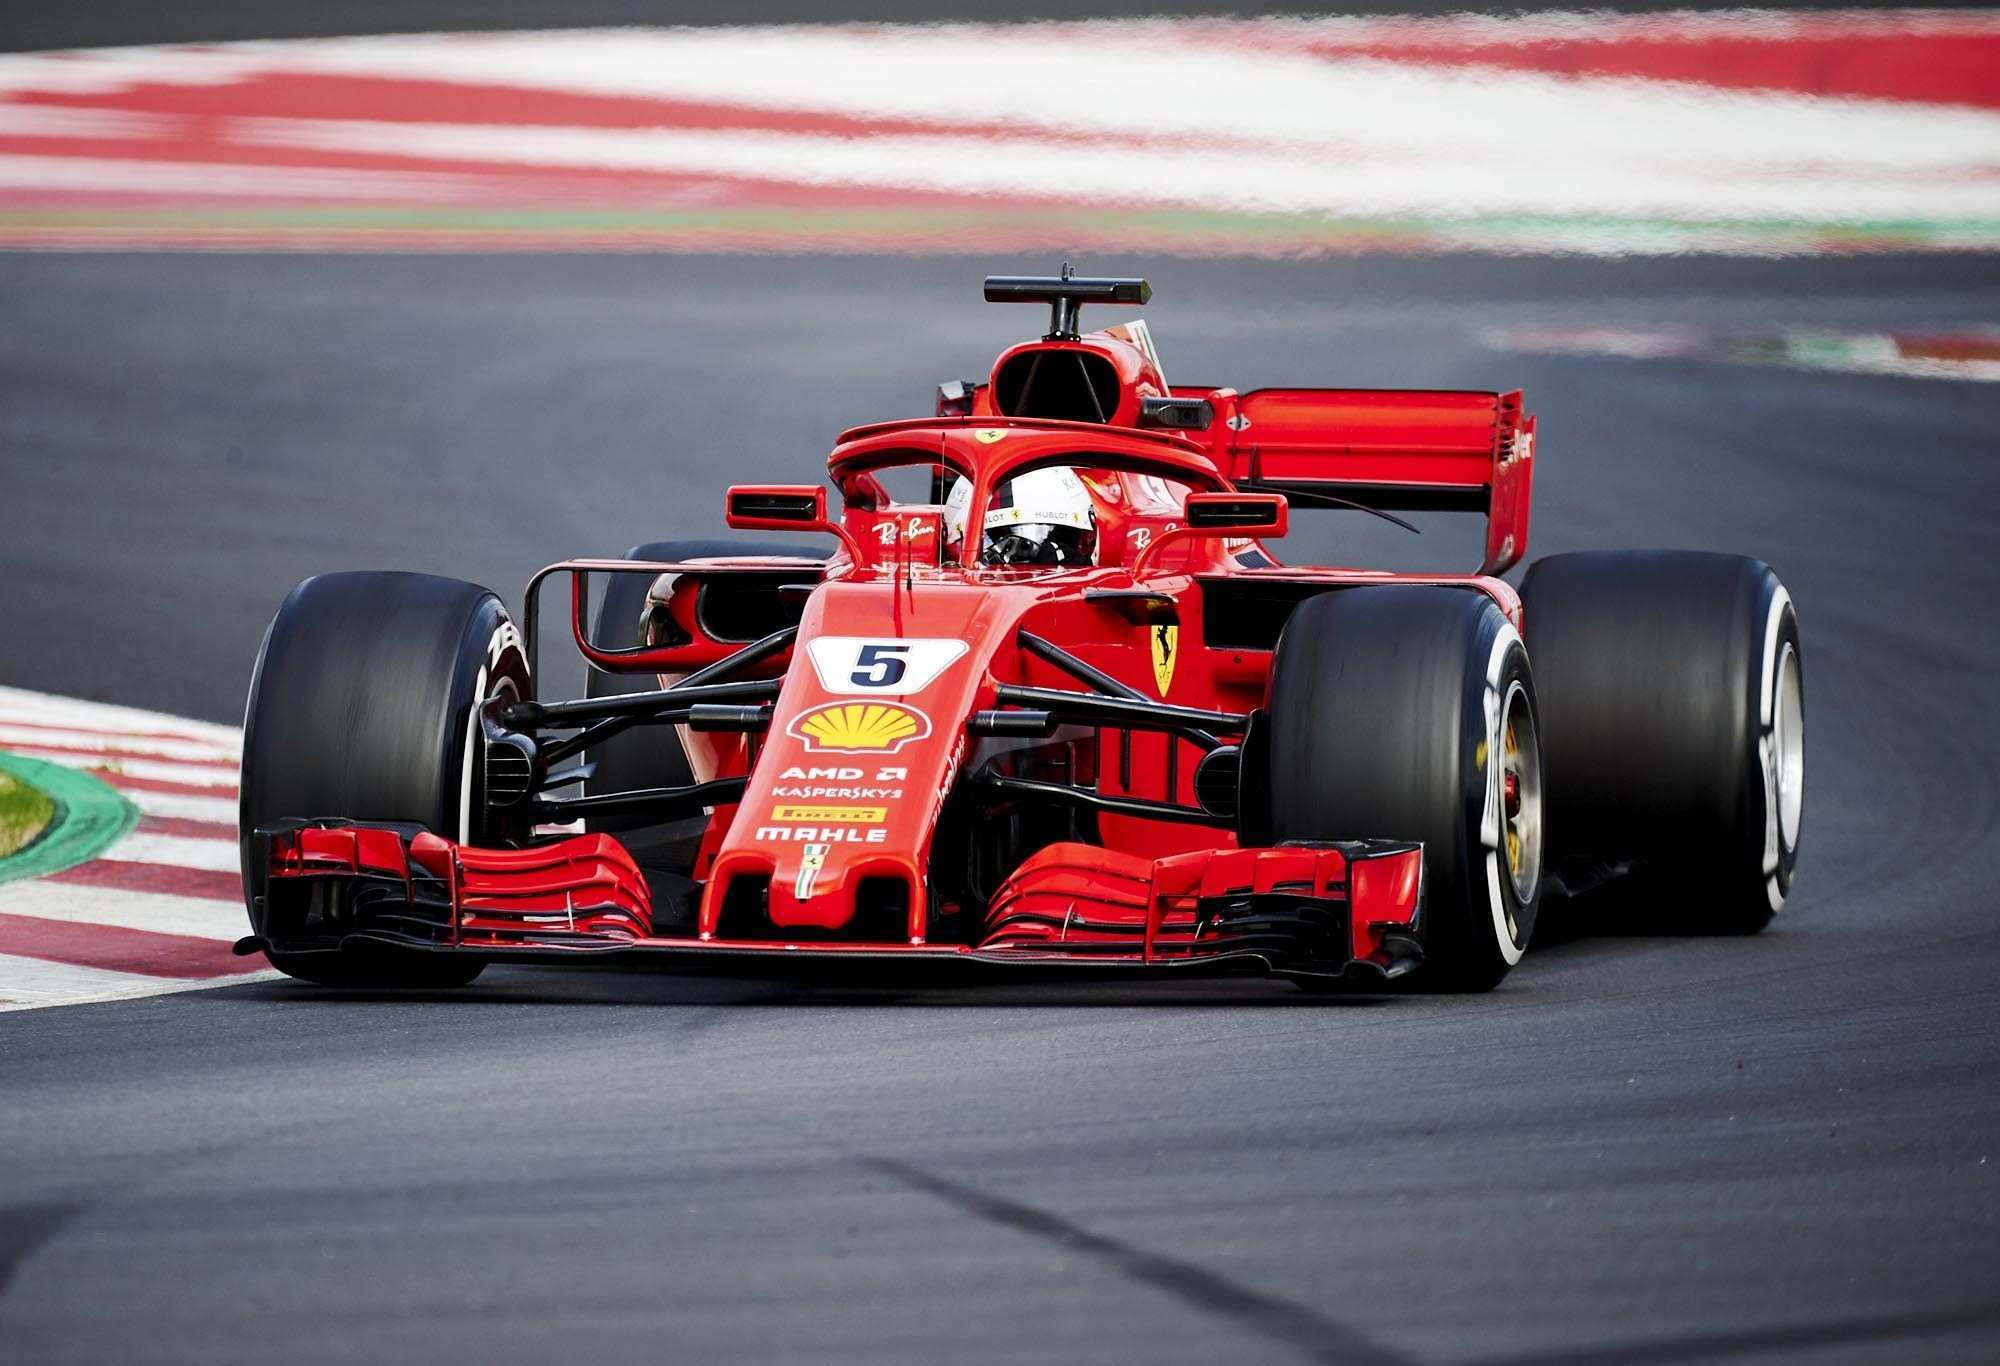 70 Gallery of Vettel Ferrari 2019 Spy Shoot Price for Vettel Ferrari 2019 Spy Shoot